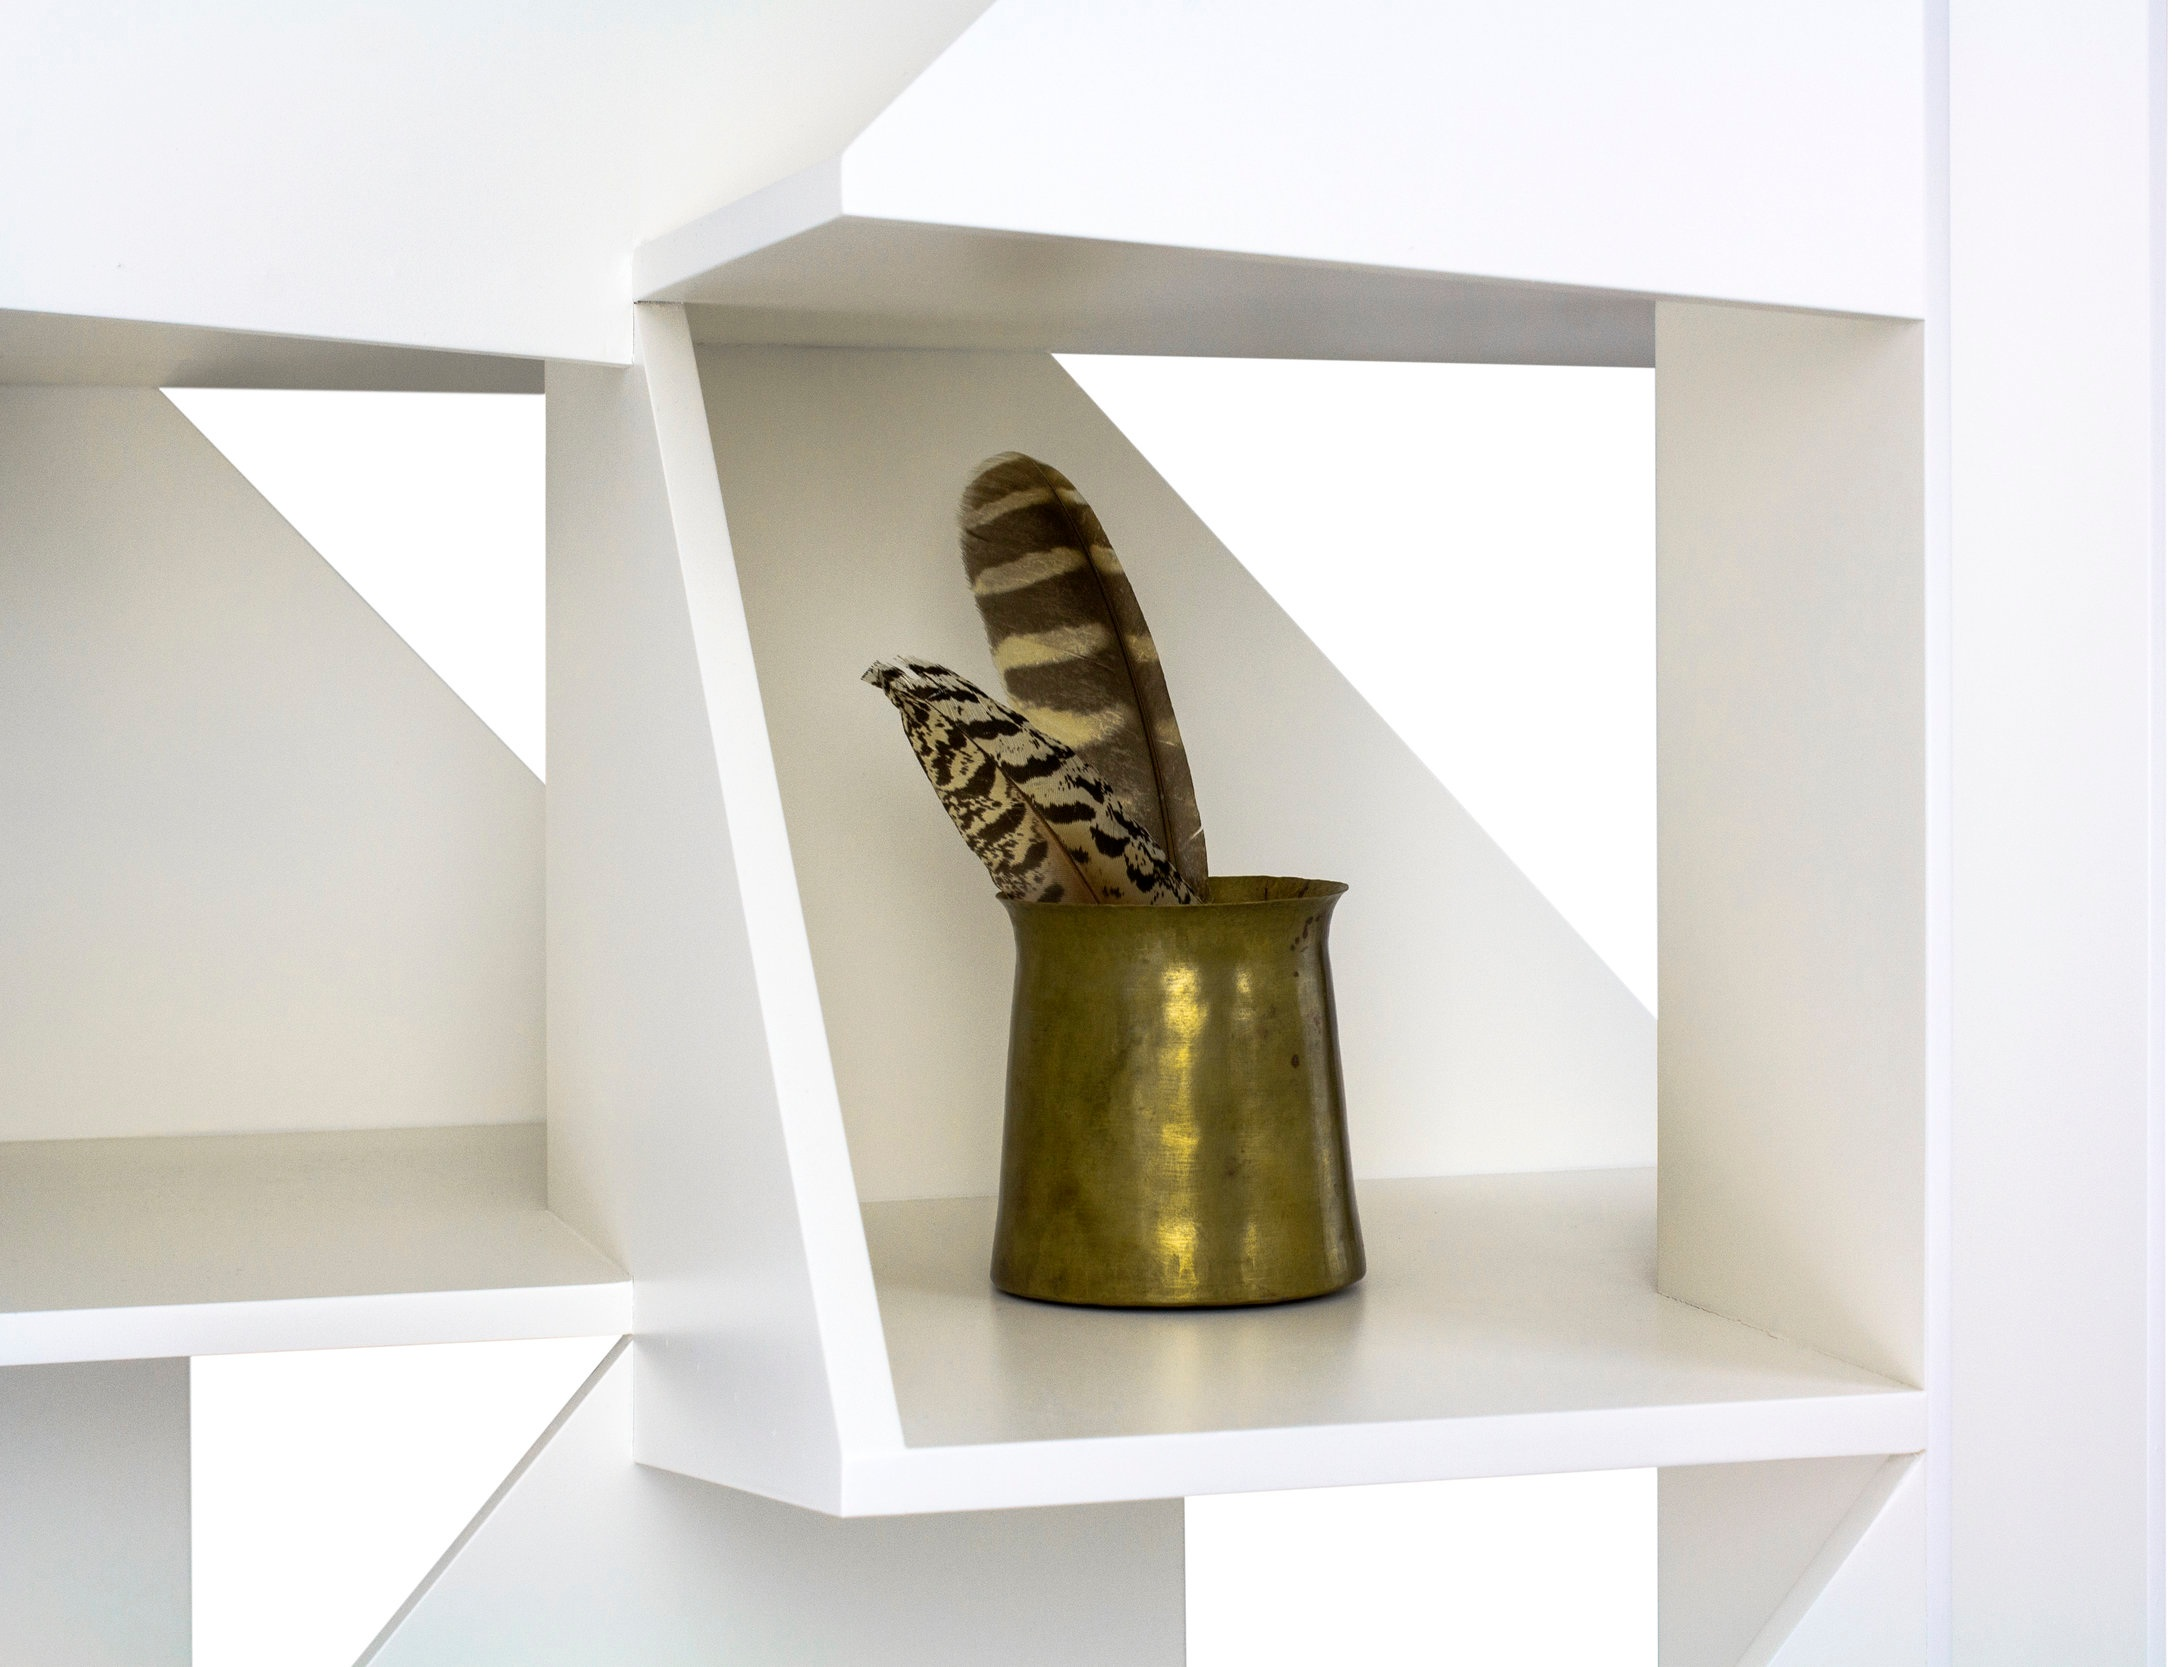 Angular, nested cubbies create displays for books or objects